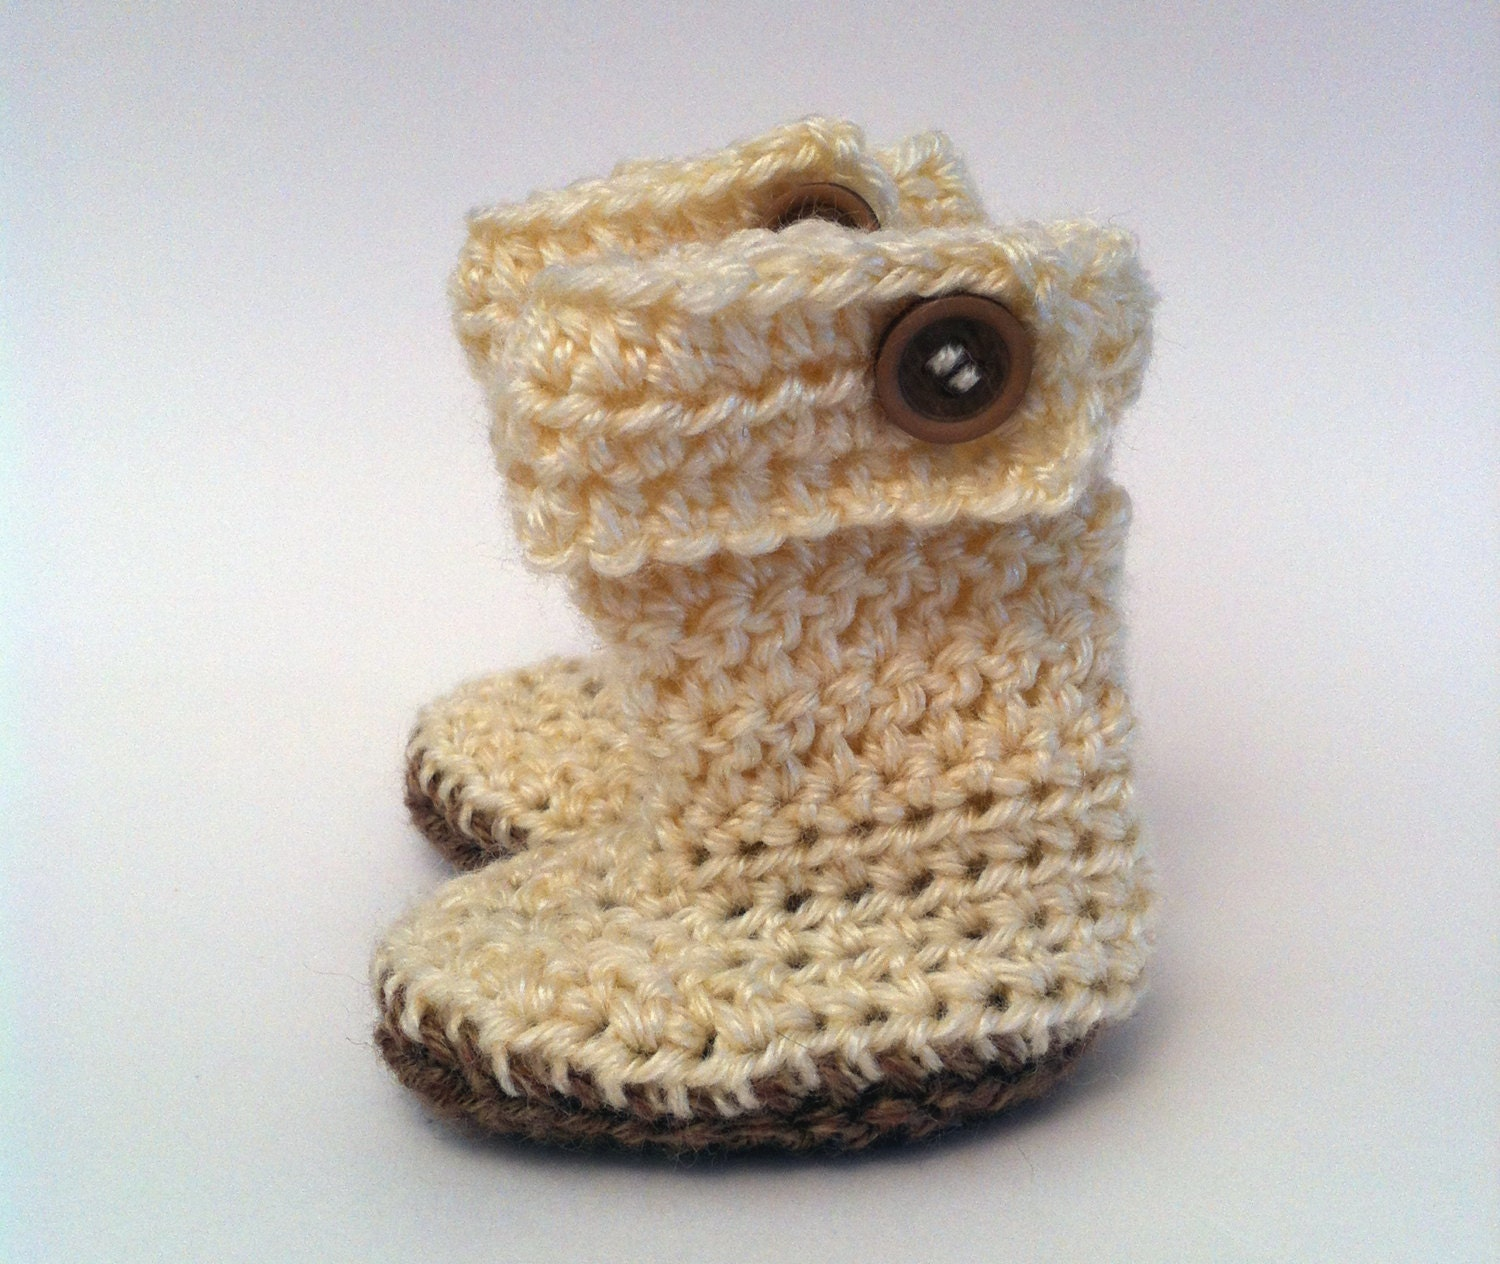 Crochet Baby Booties, Ugg Botties For Babys, Newborn Shoes,Off White ...